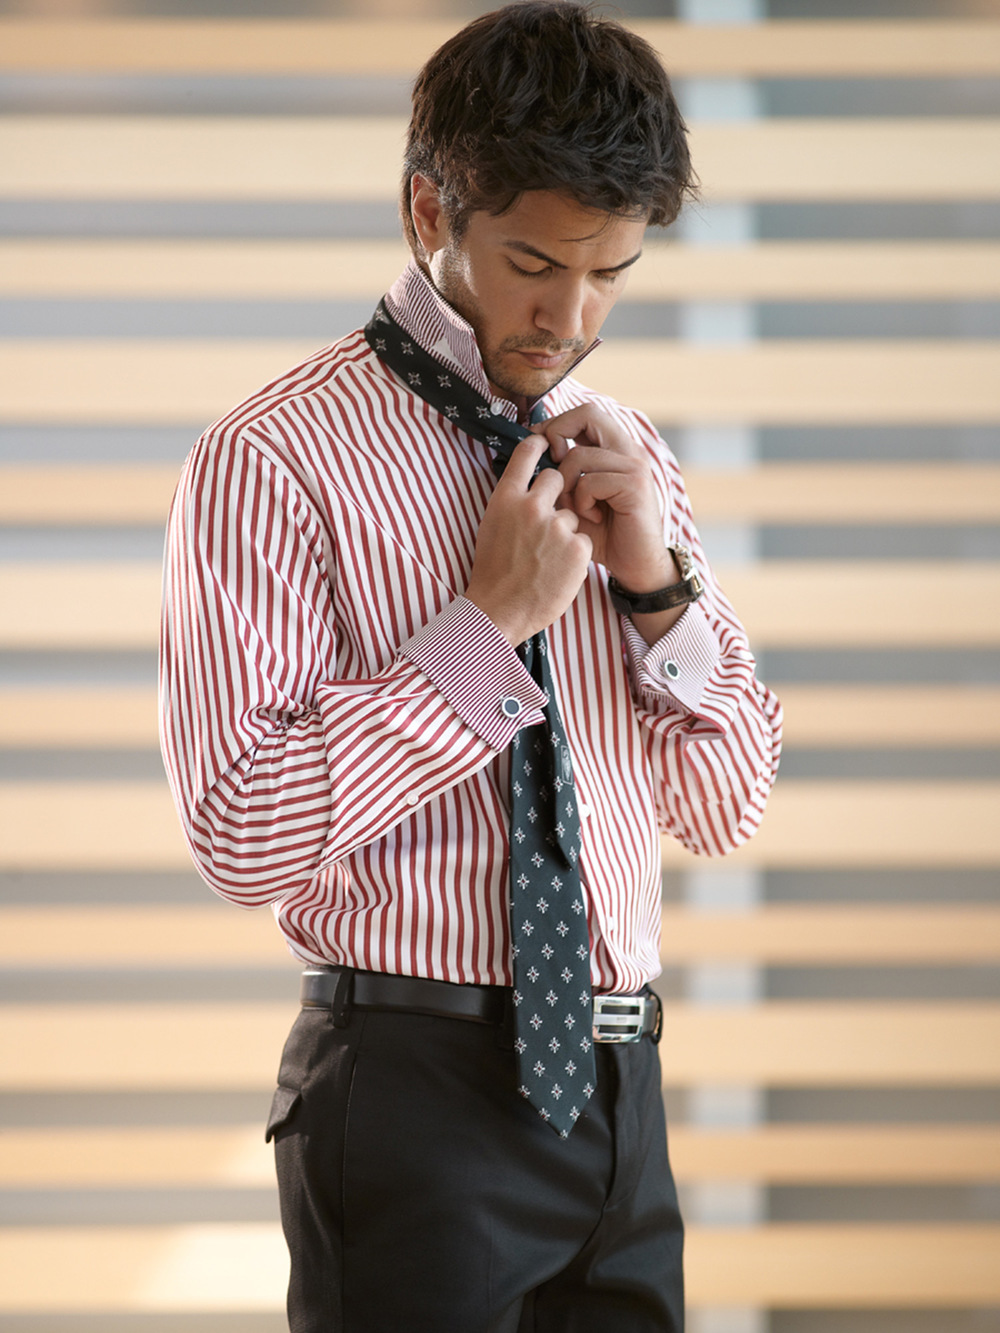 Etrusca-Collezione-Uno-Gentiuomo-Red-Stripe-Contrast-Stripe-Collar-Cuff-Model-Indoors-001-RT.jpg